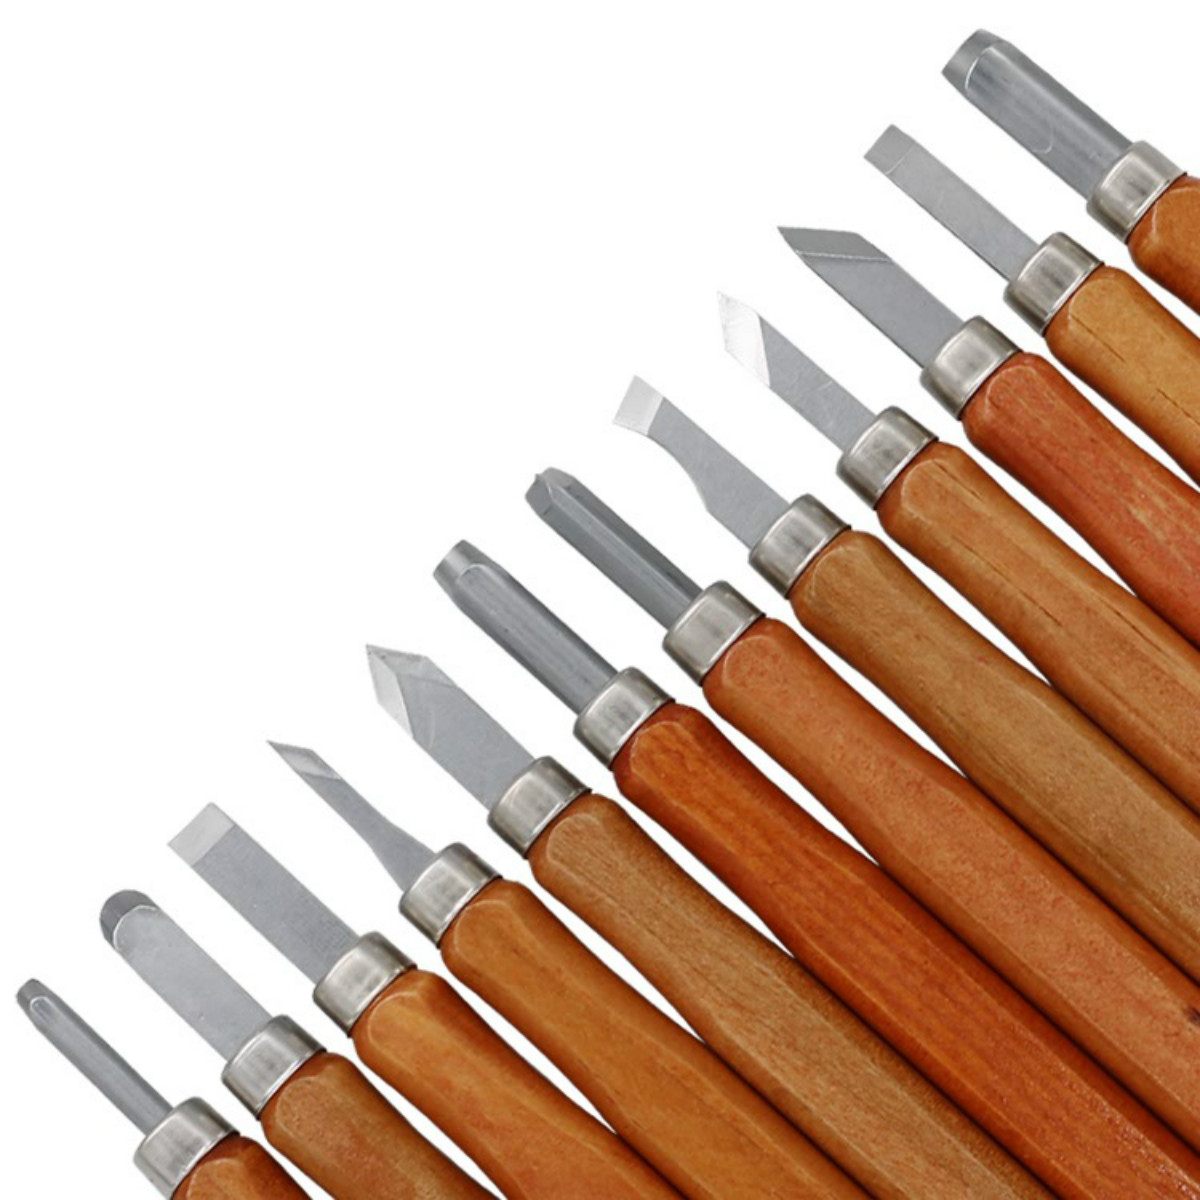 12pcs Carving Tools Hand Wood Carving Chisels Knife for Wood Working DIY Tools